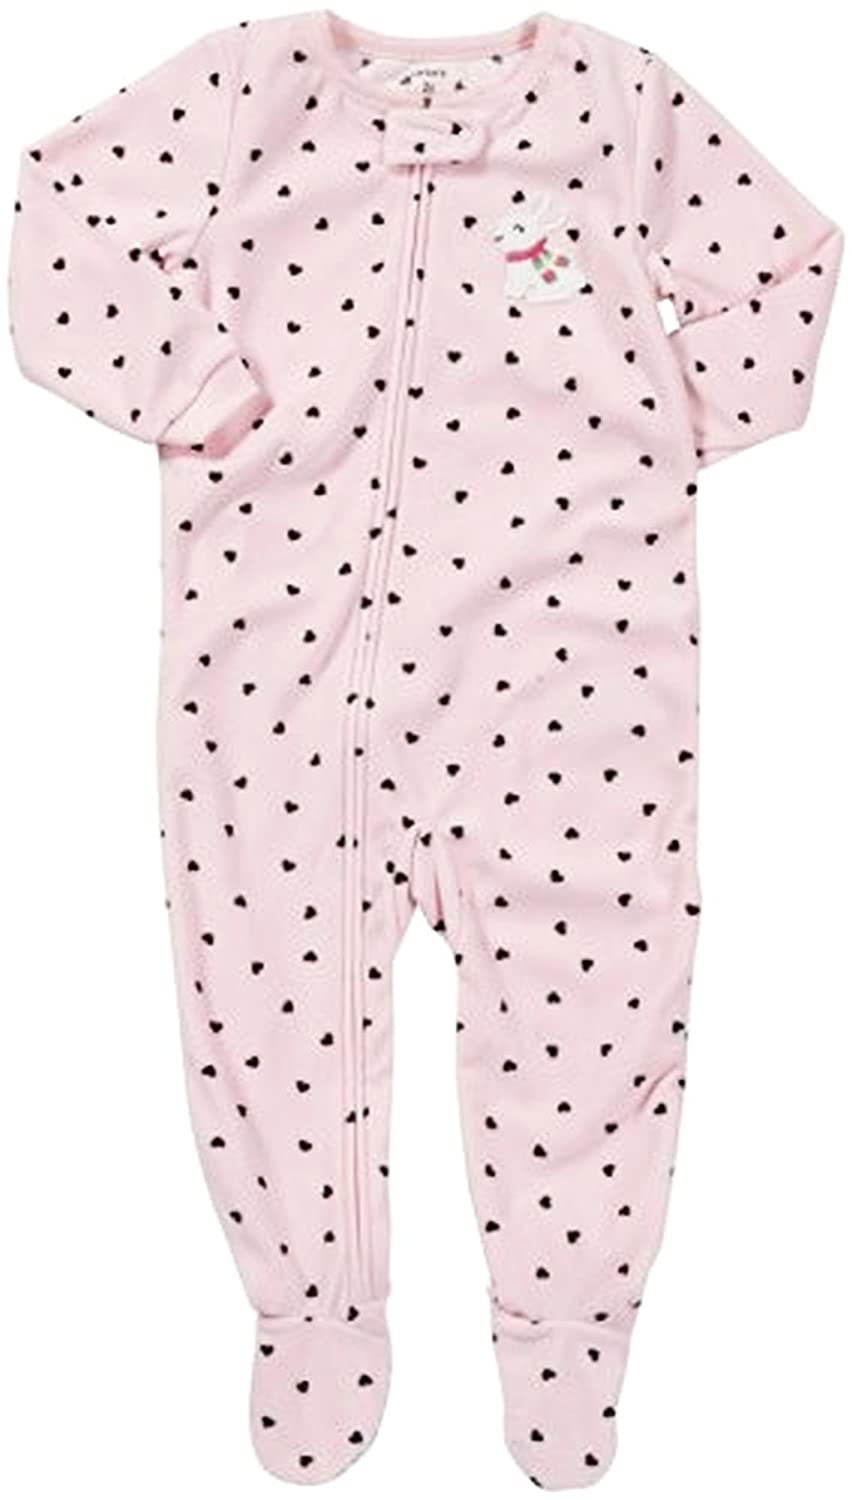 54a966387 CARTER S Girl s Size 3T Pink Hearts